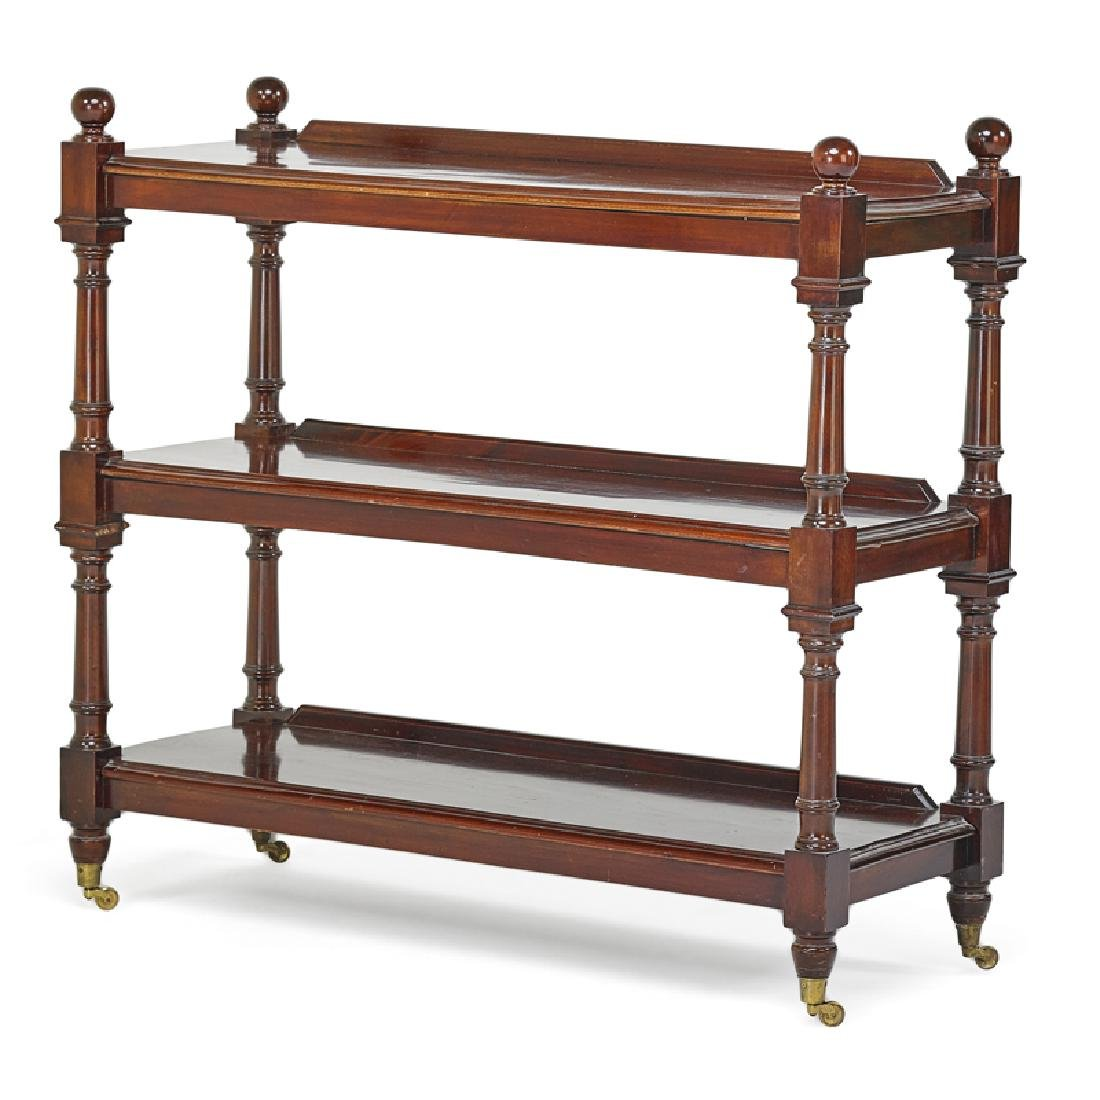 ENGLISH MAHOGANY DESSERT TROLLEY